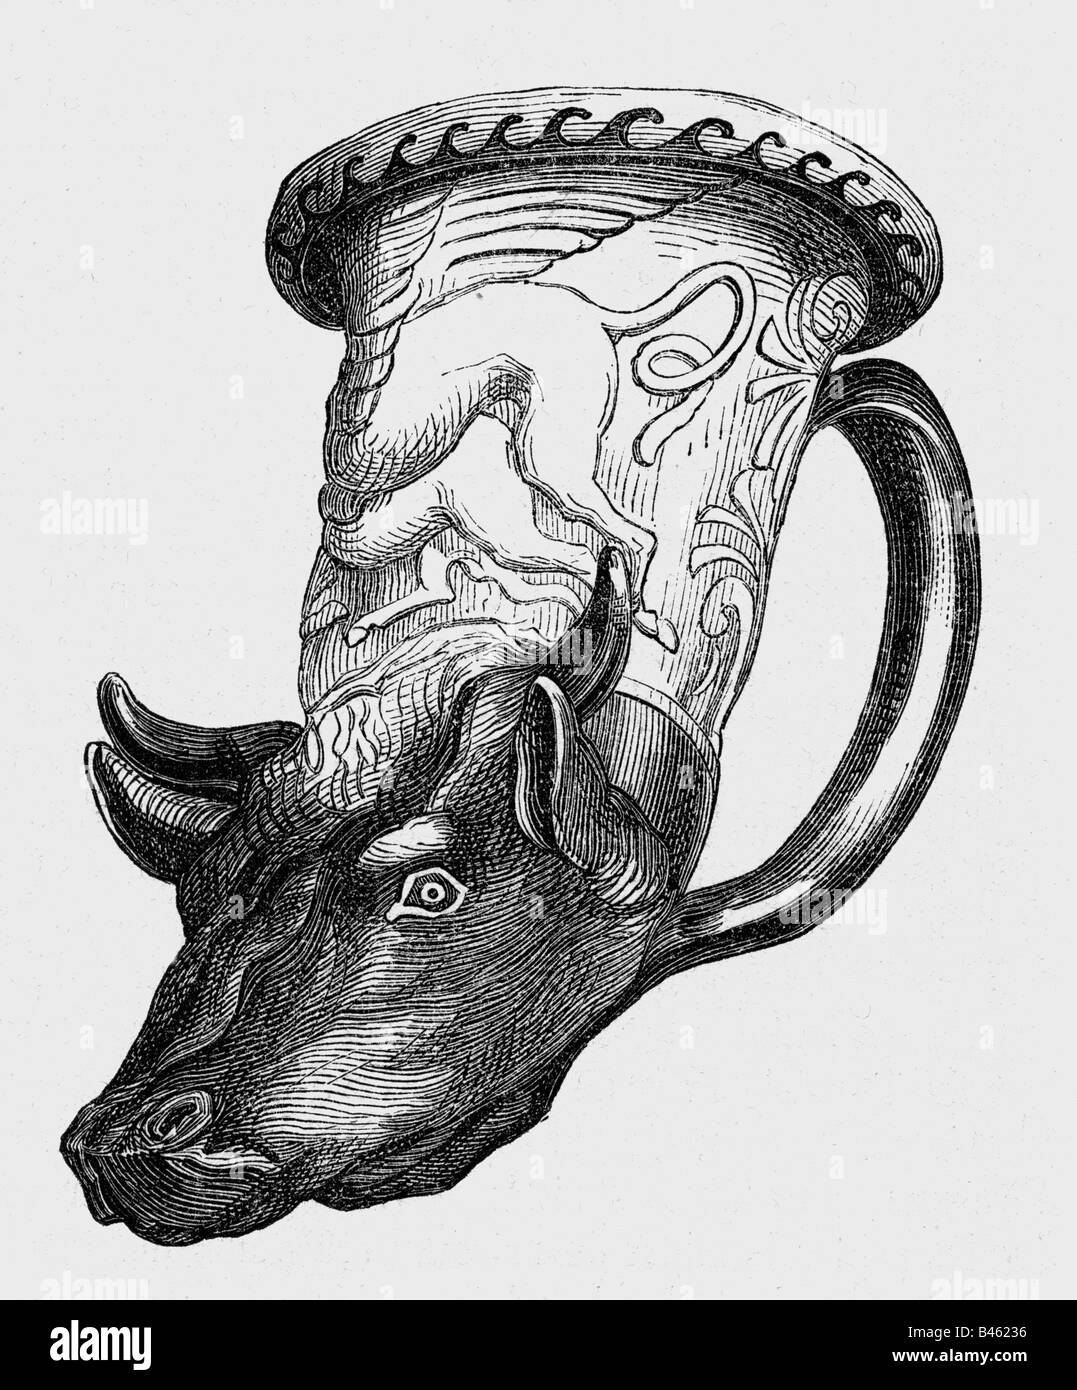 ancient world, Greece, Rhyton, container with bulls head,  antiquity, historic, historical, 19th century, ancient - Stock Image